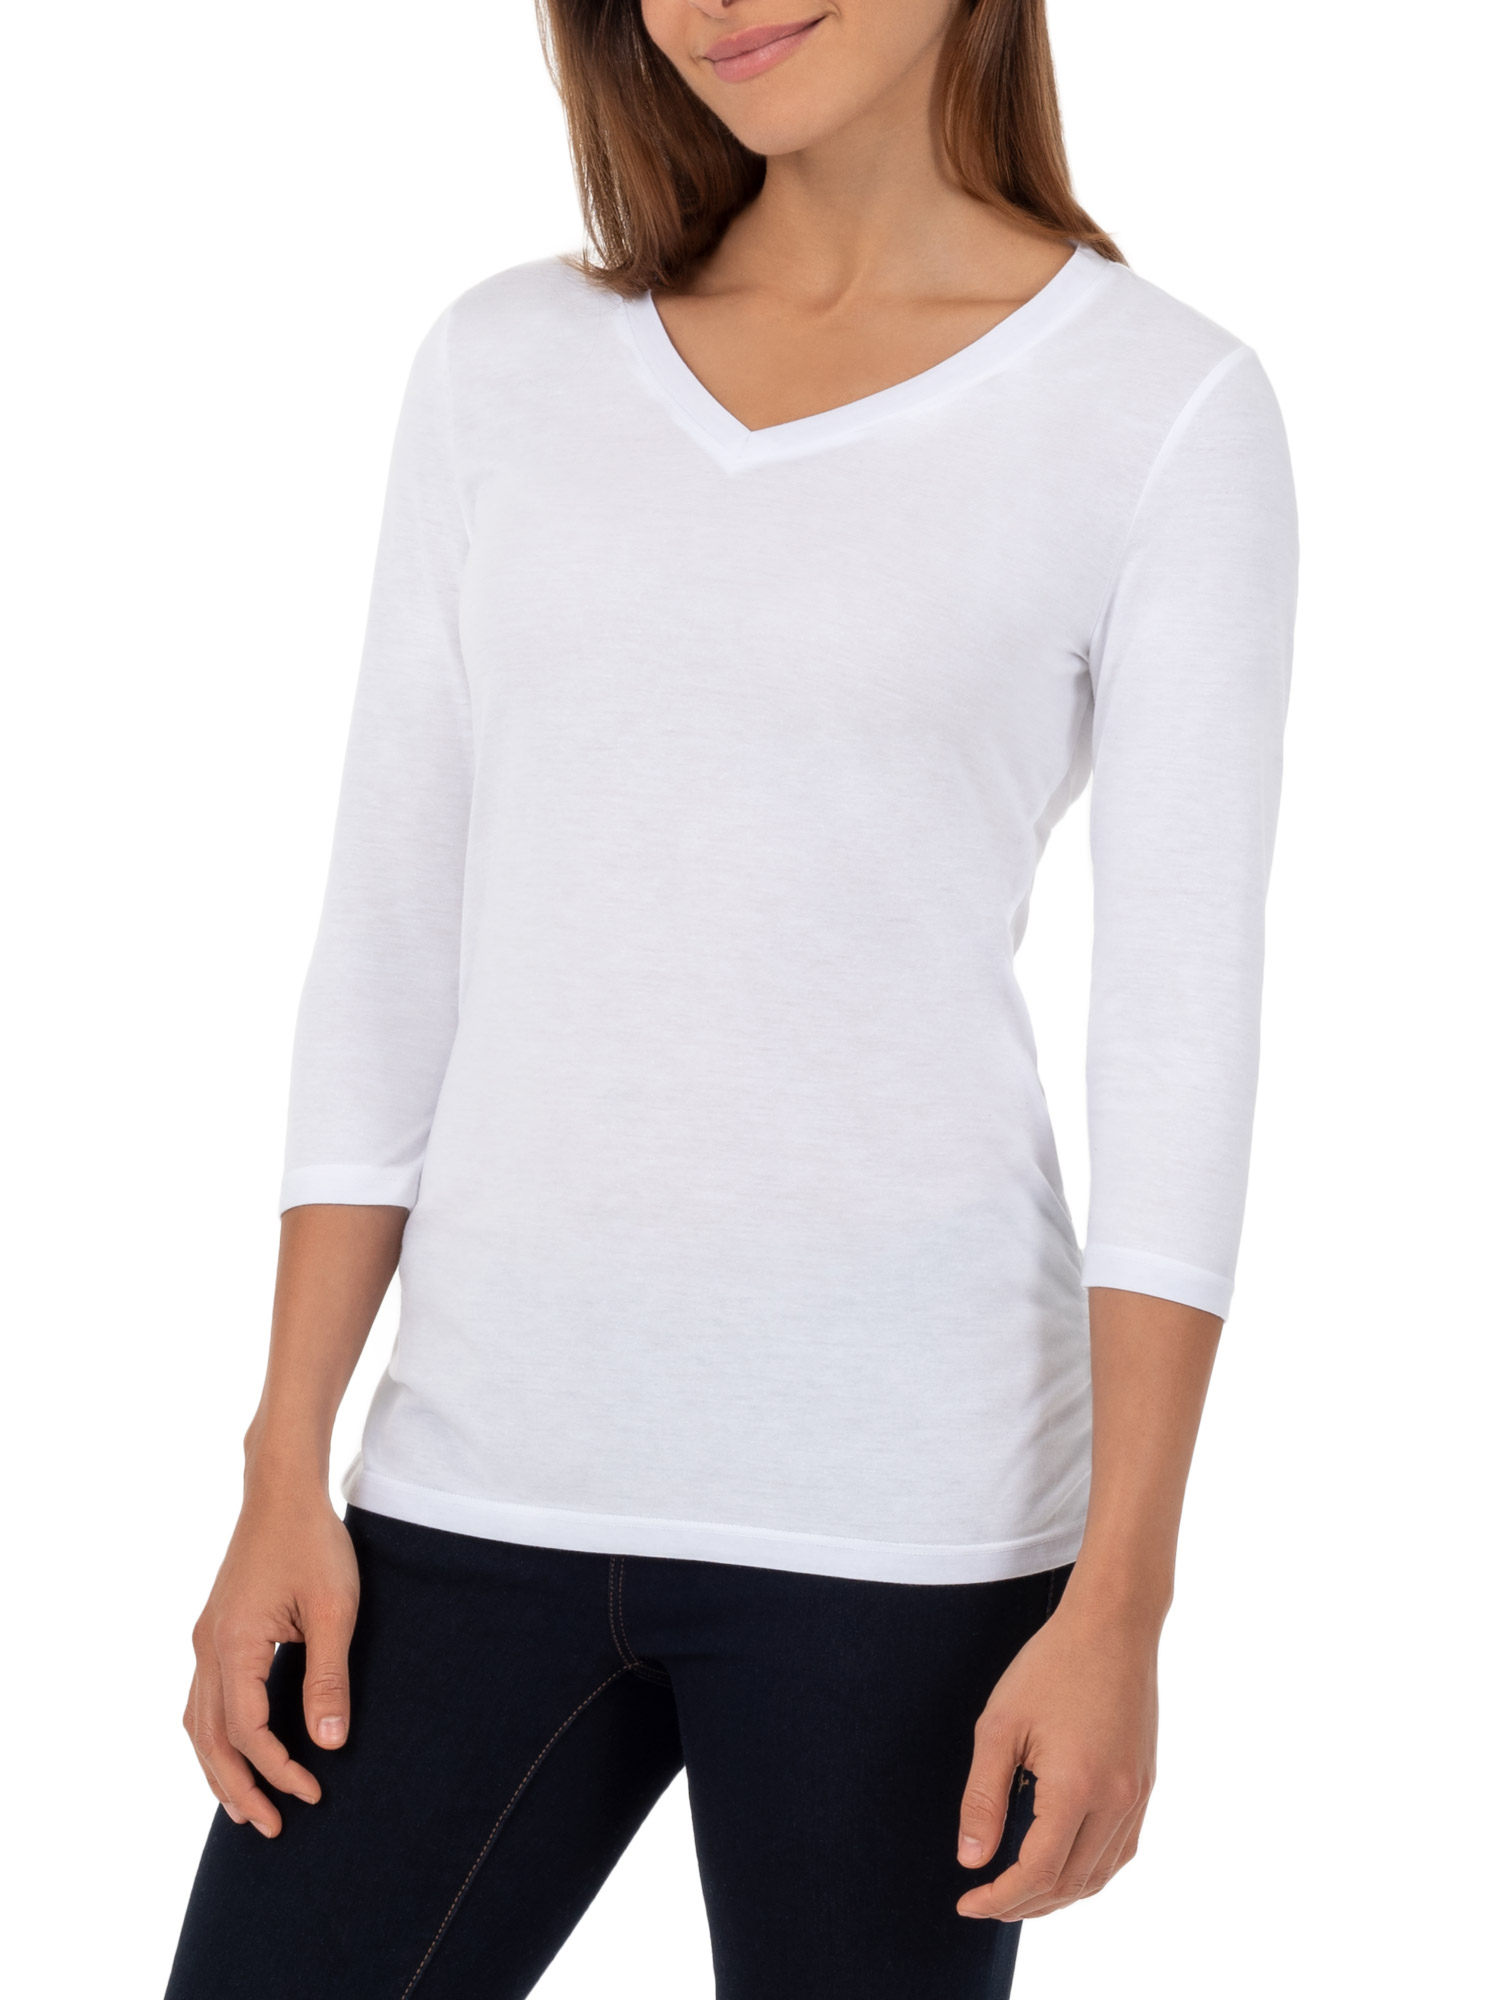 Women's ¾ Length Sleeve V-Neck Ruched Tee Shirt